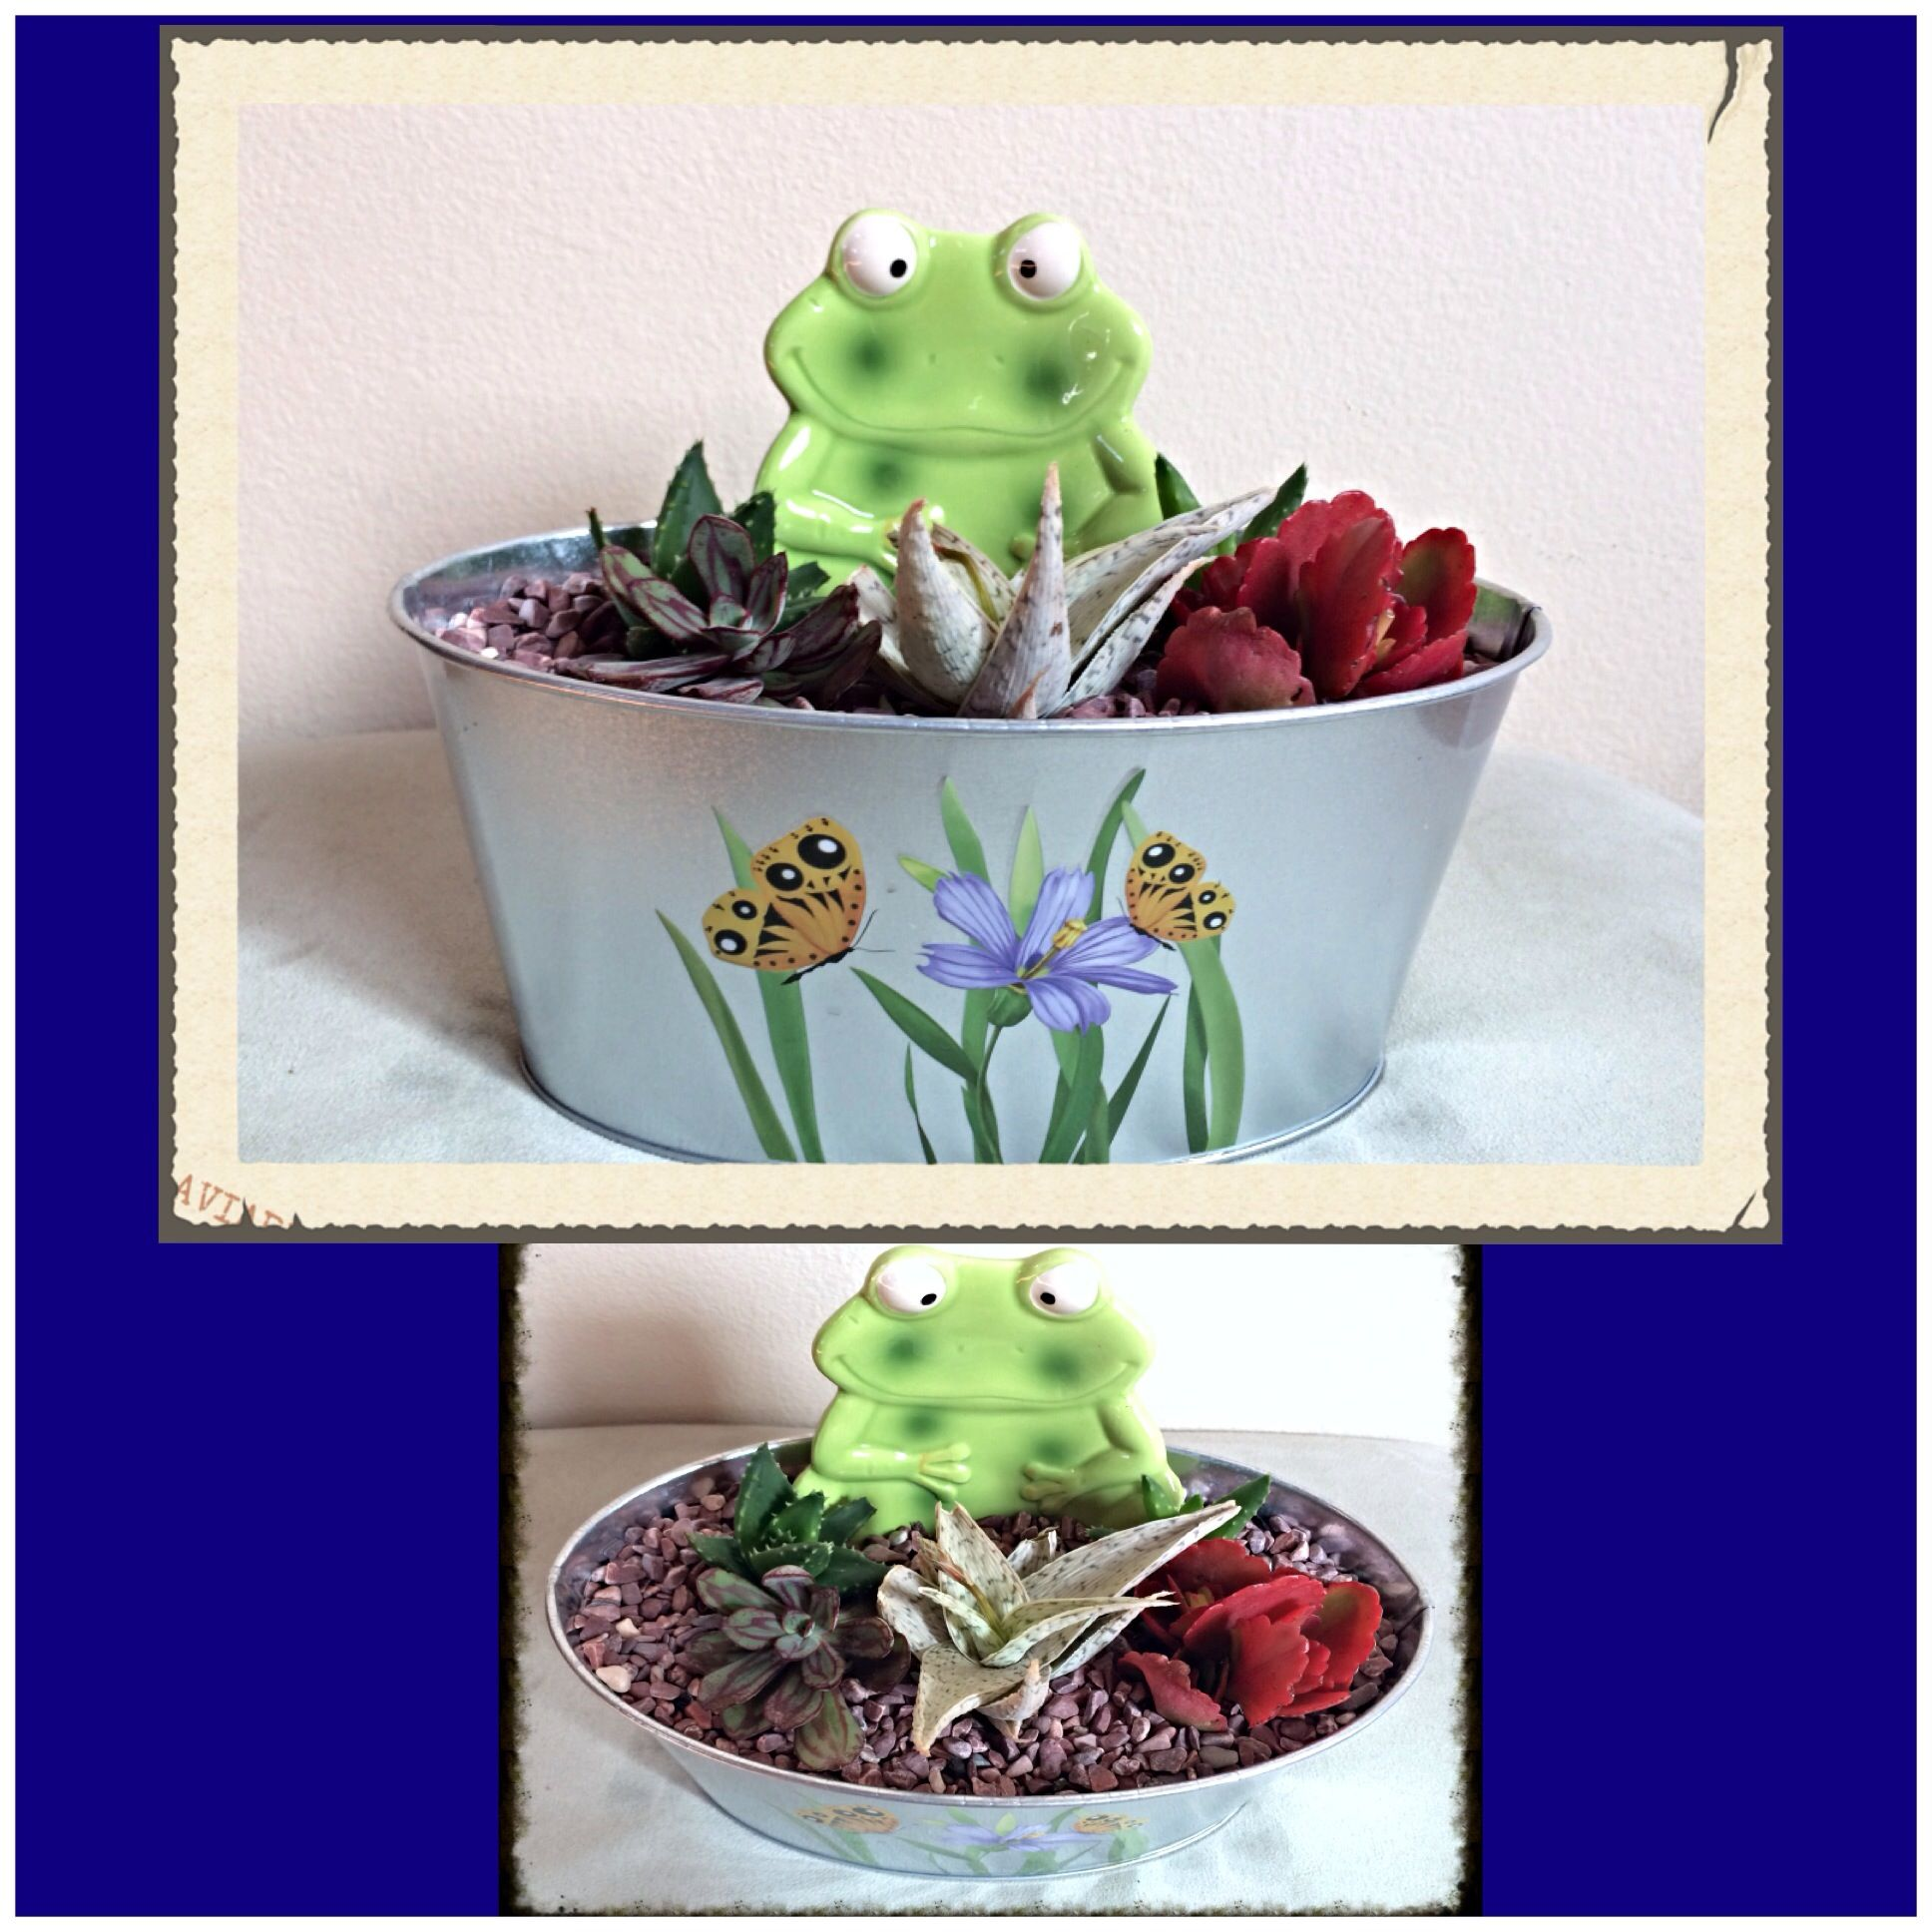 Succulents with froggy